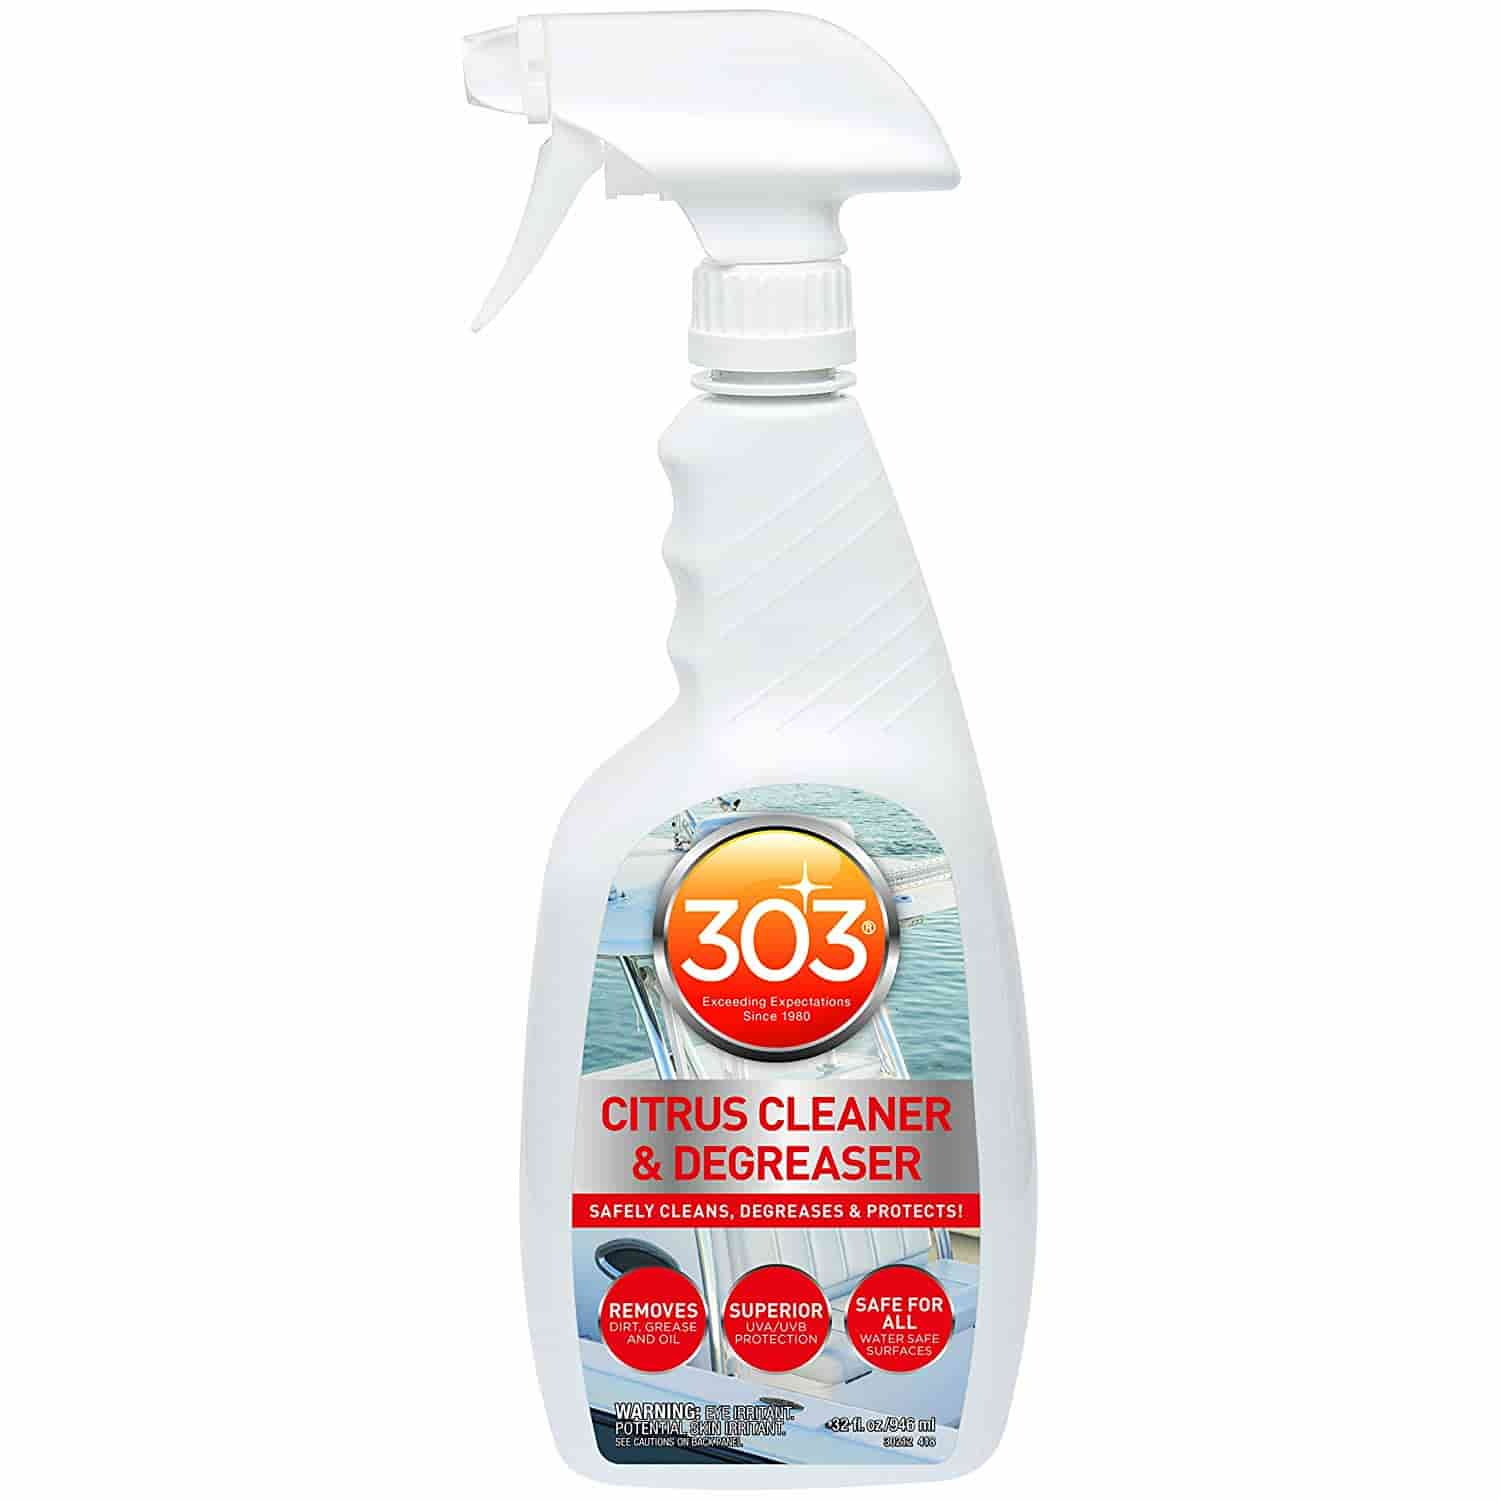 marine citrus cleaner